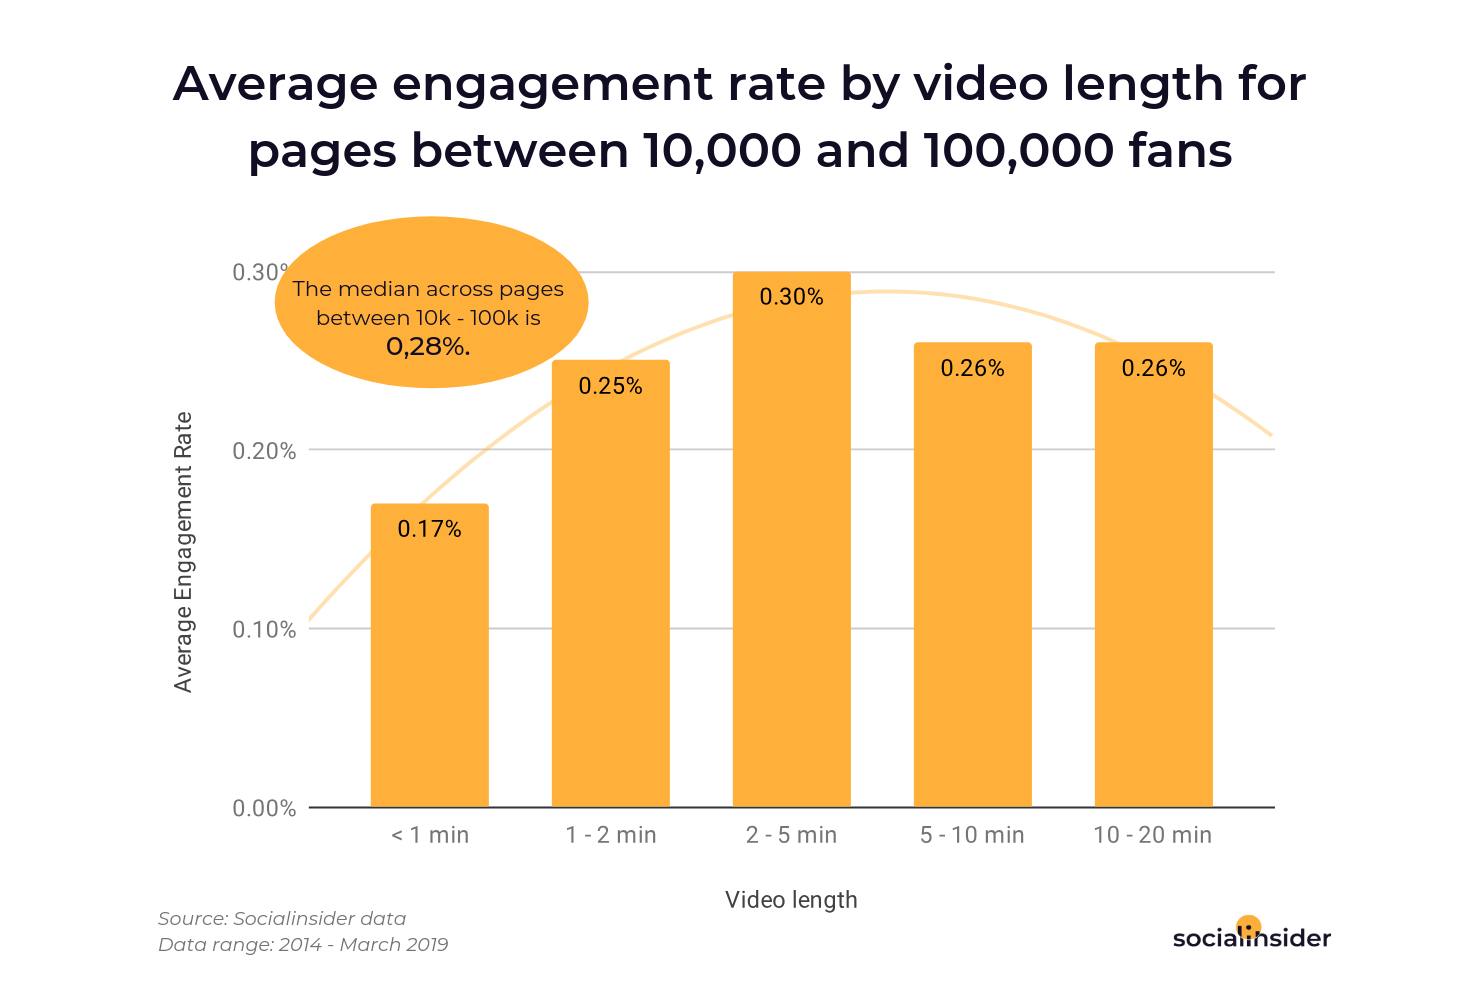 Average engagement rate by video length for pages with an audience between 10,000 and 100,000 fans